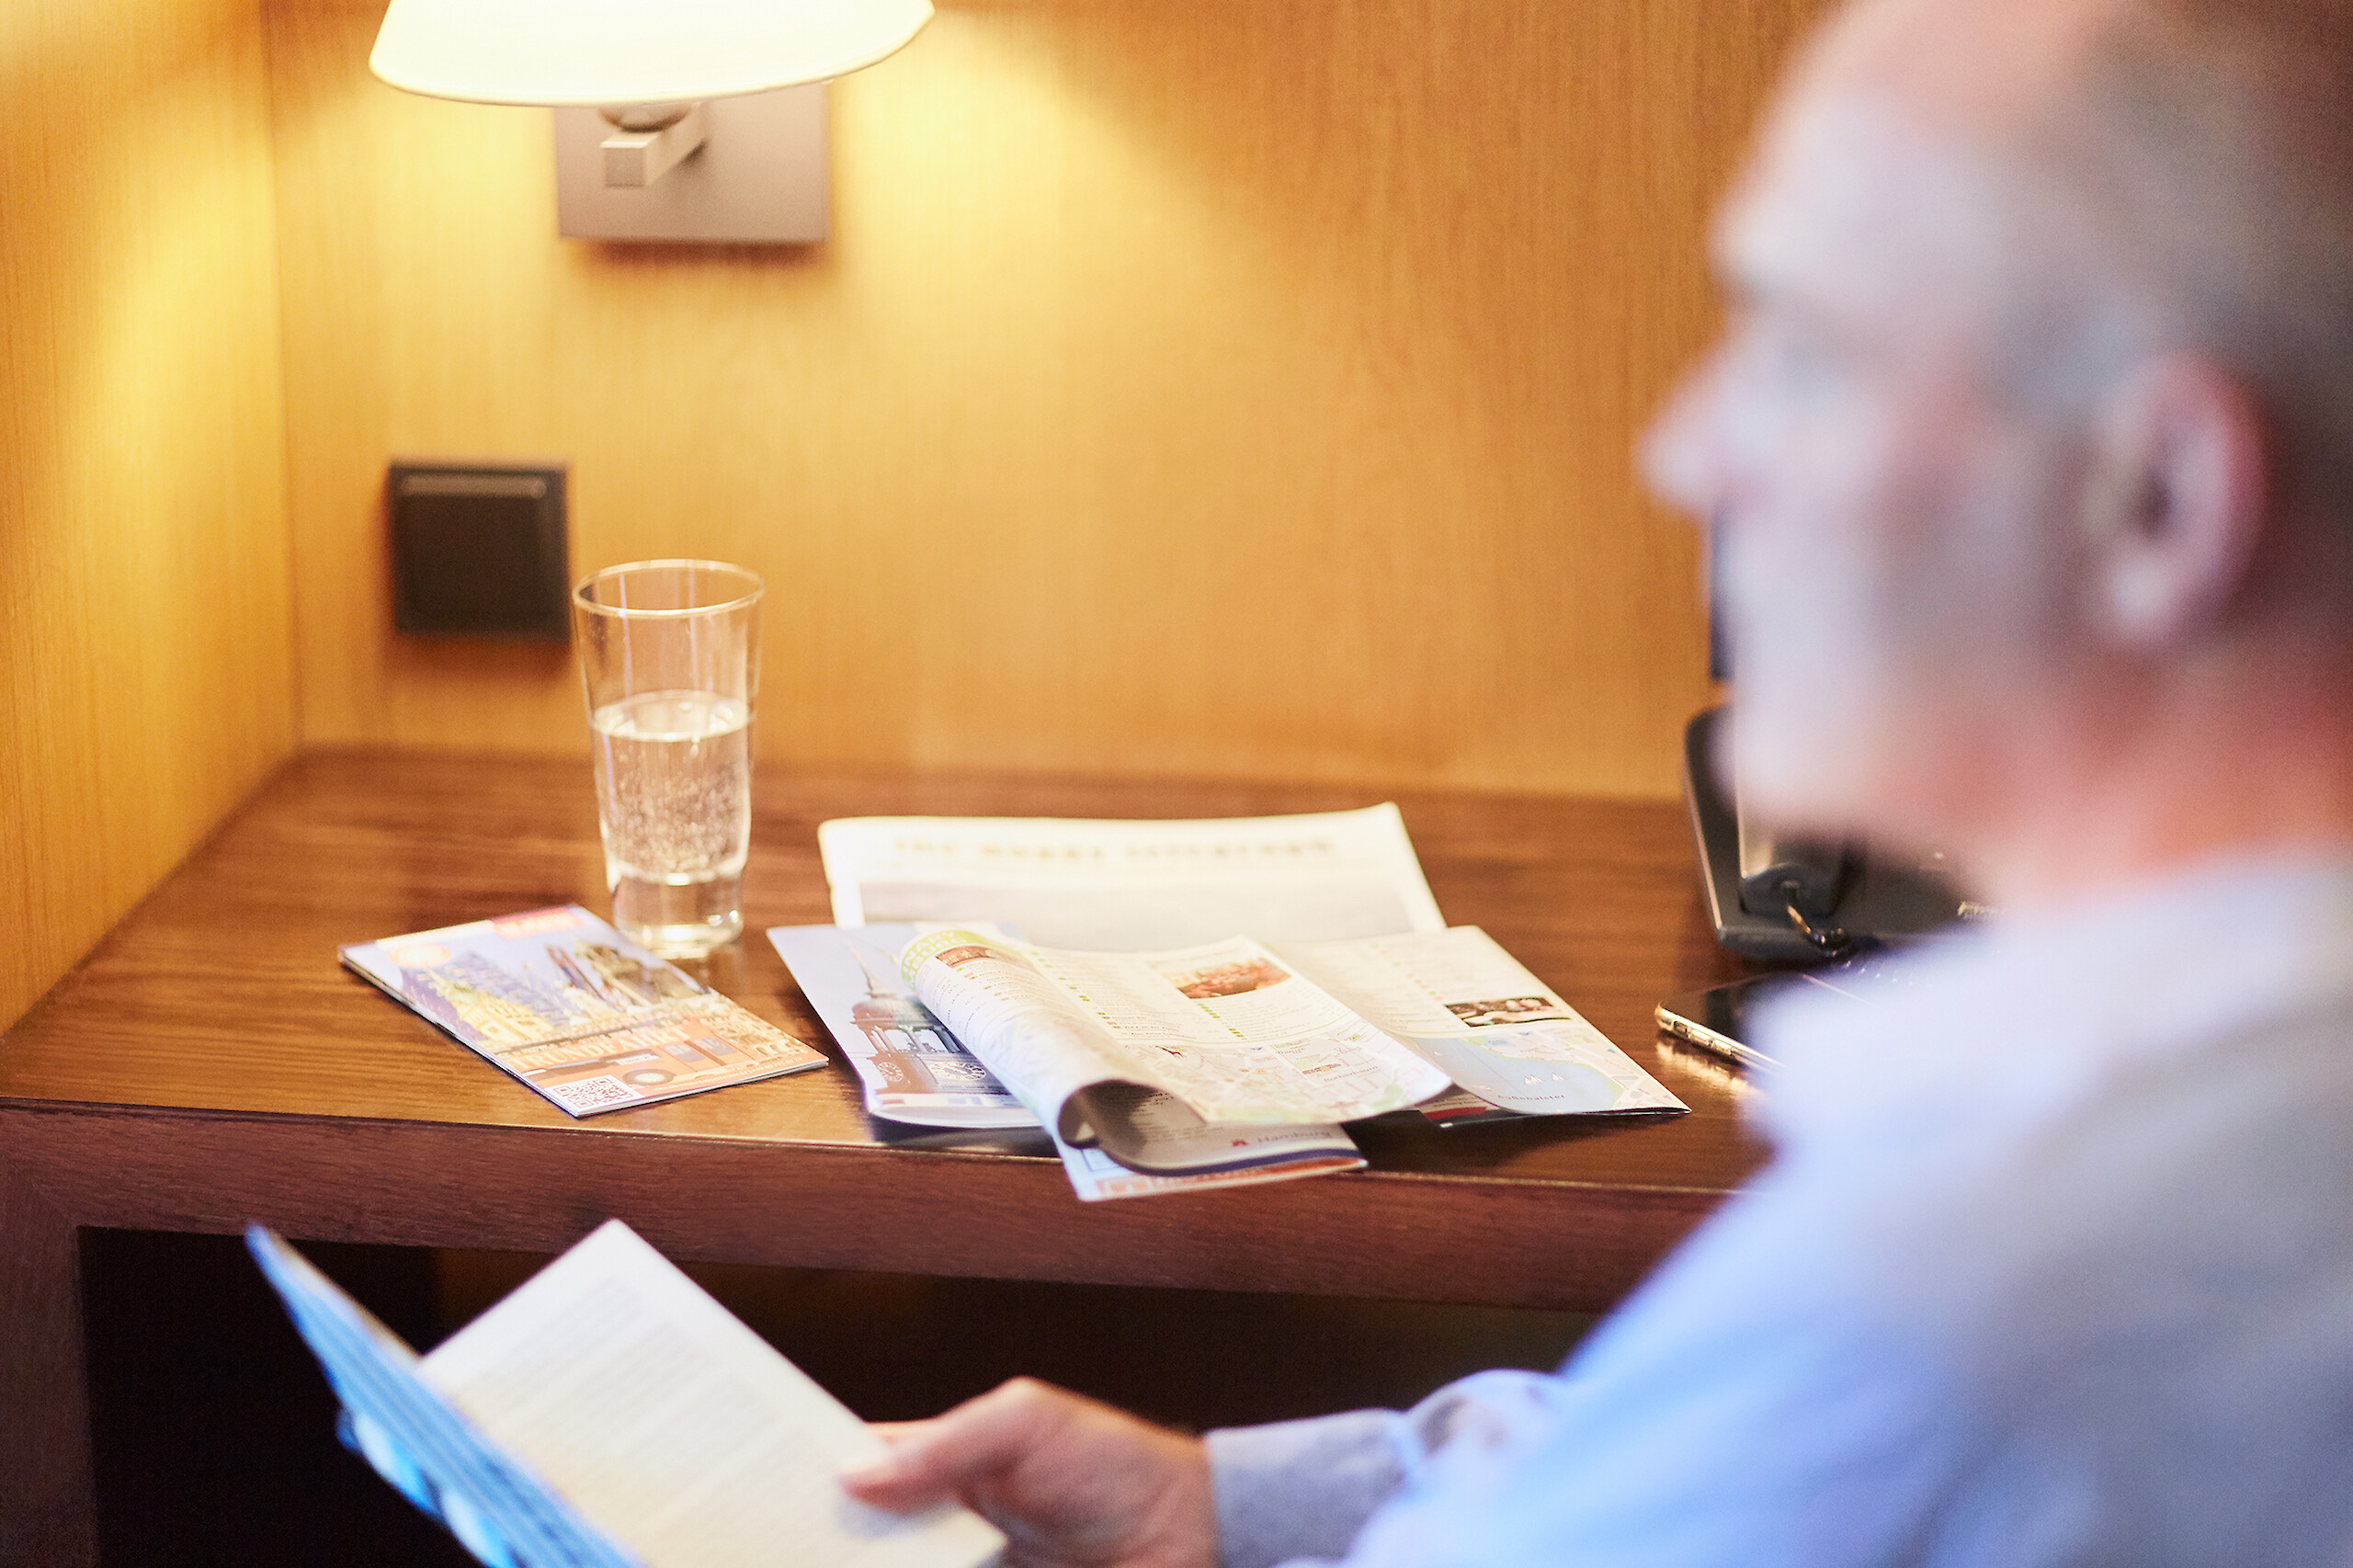 A hotel guest reading brochures at his desk in his lieutenant hotel room